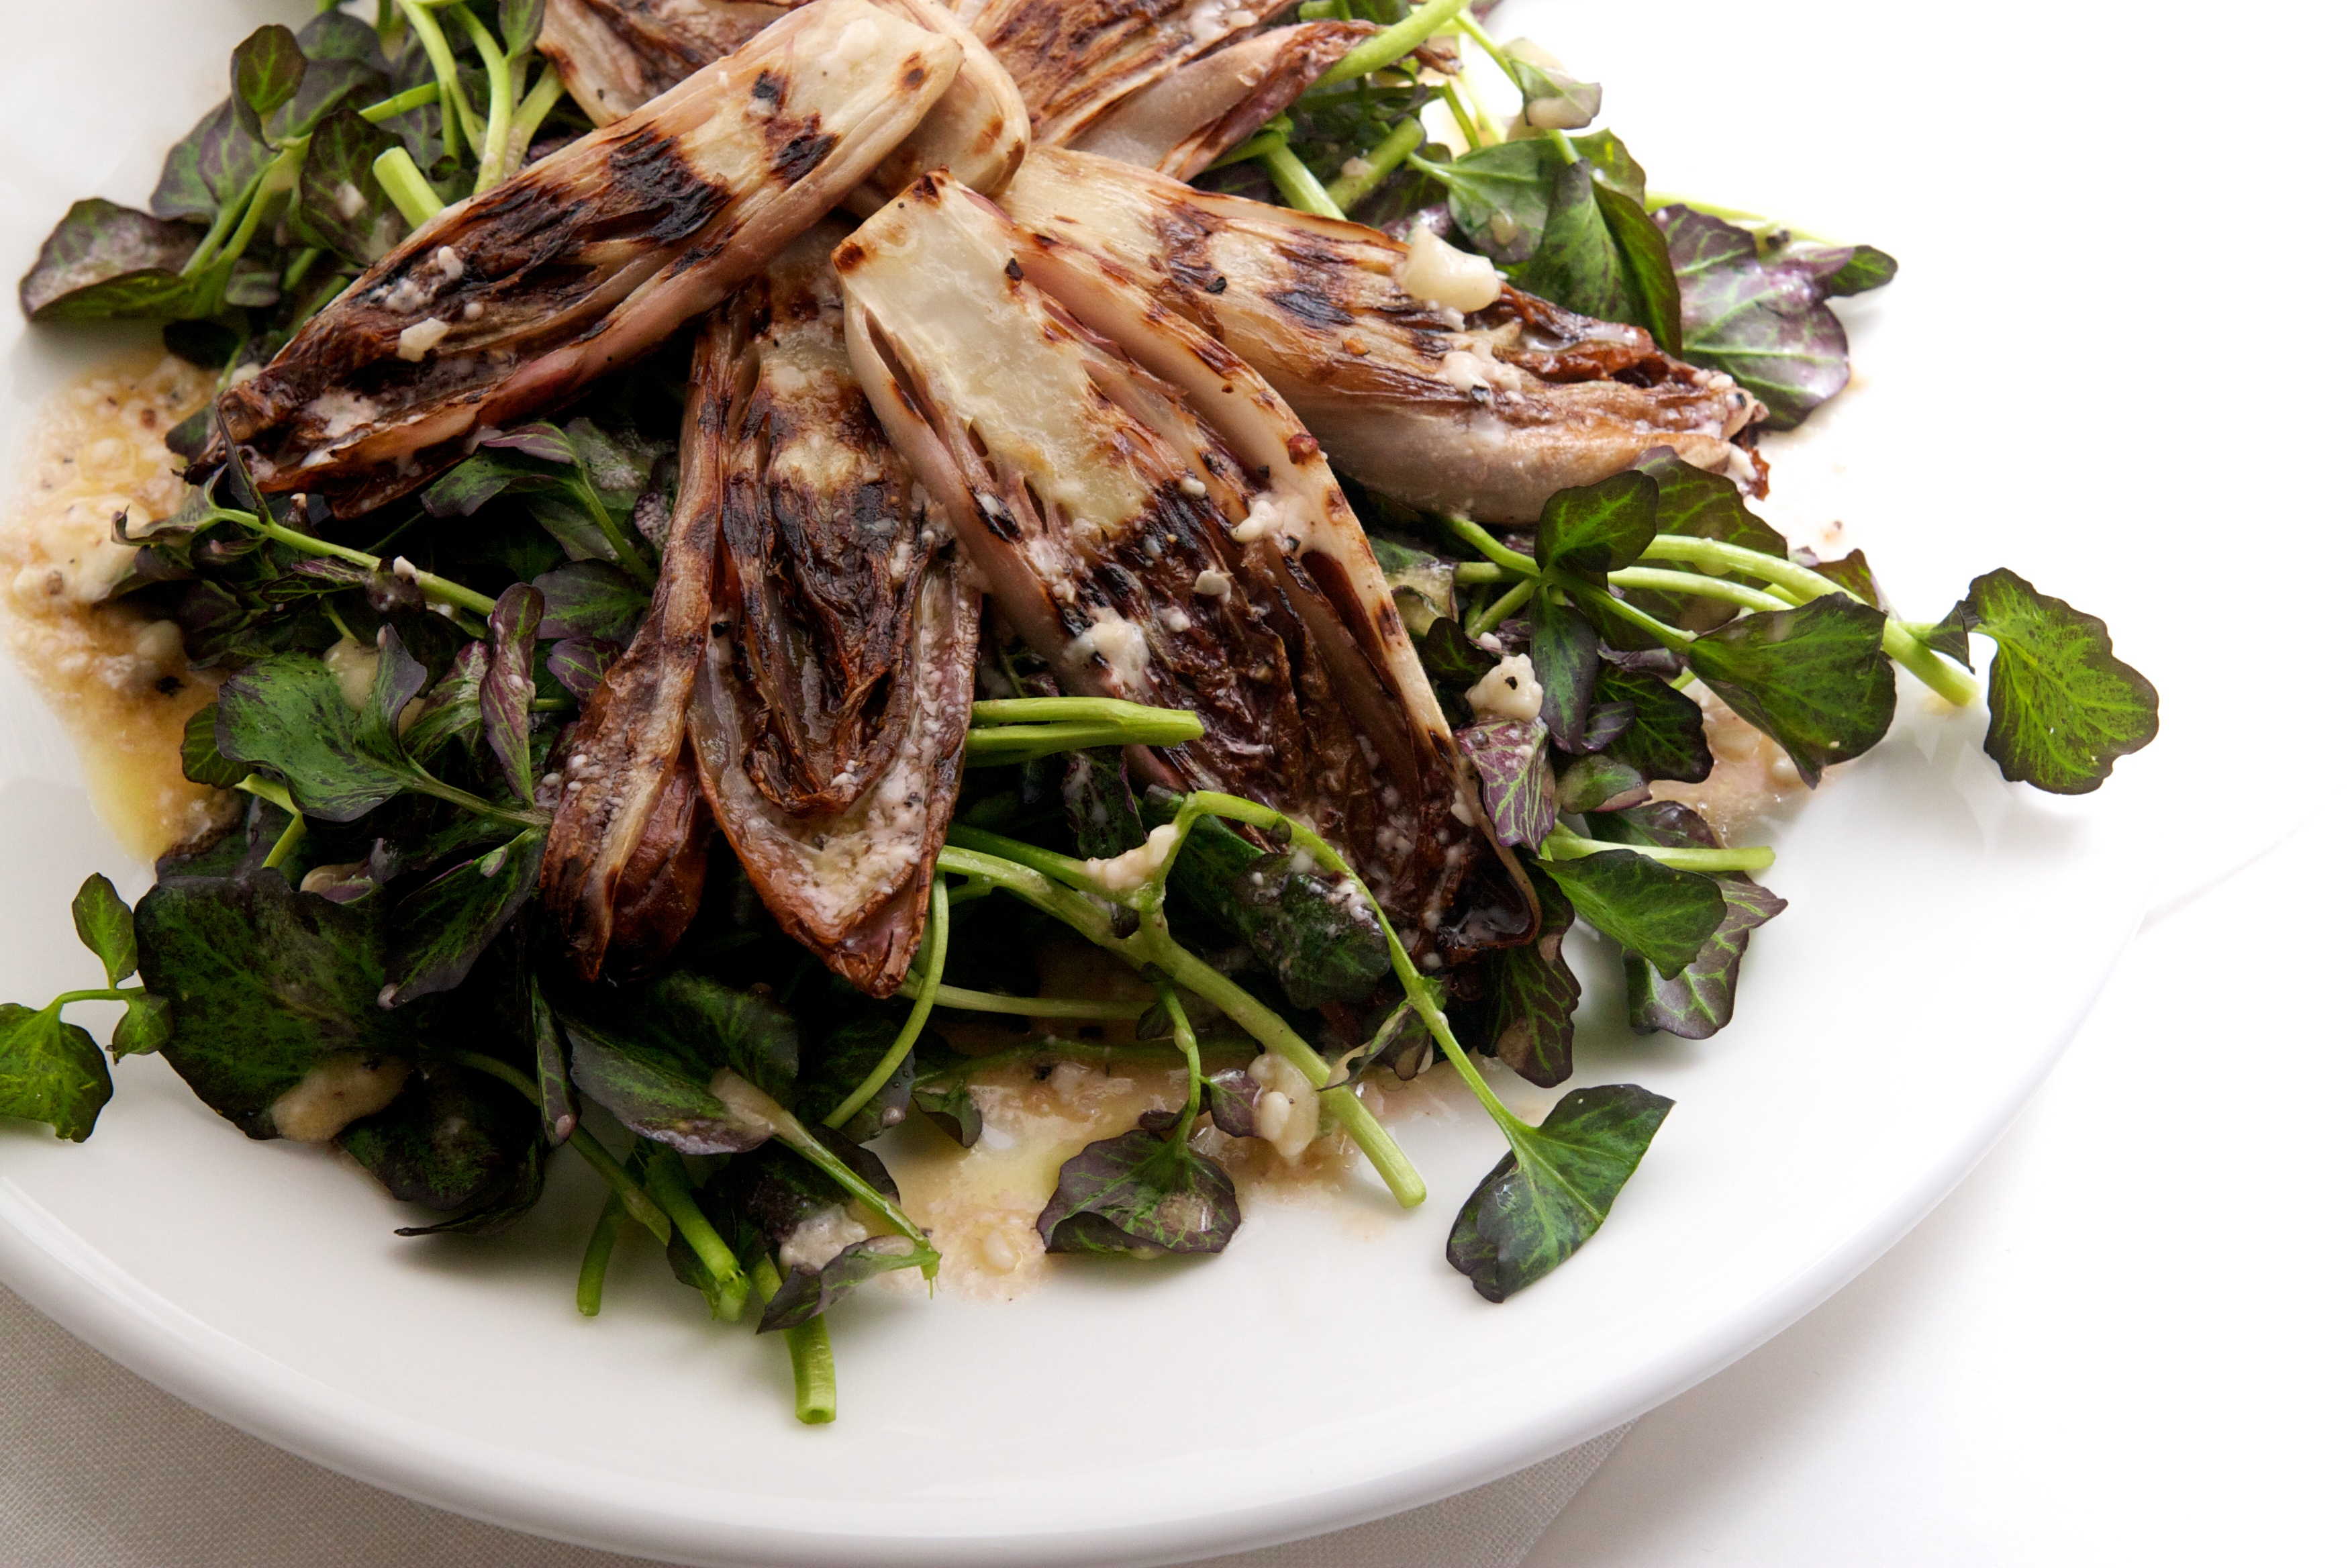 Grilled Endive & Watercress Salad with a Blue Cheese Vinagrette